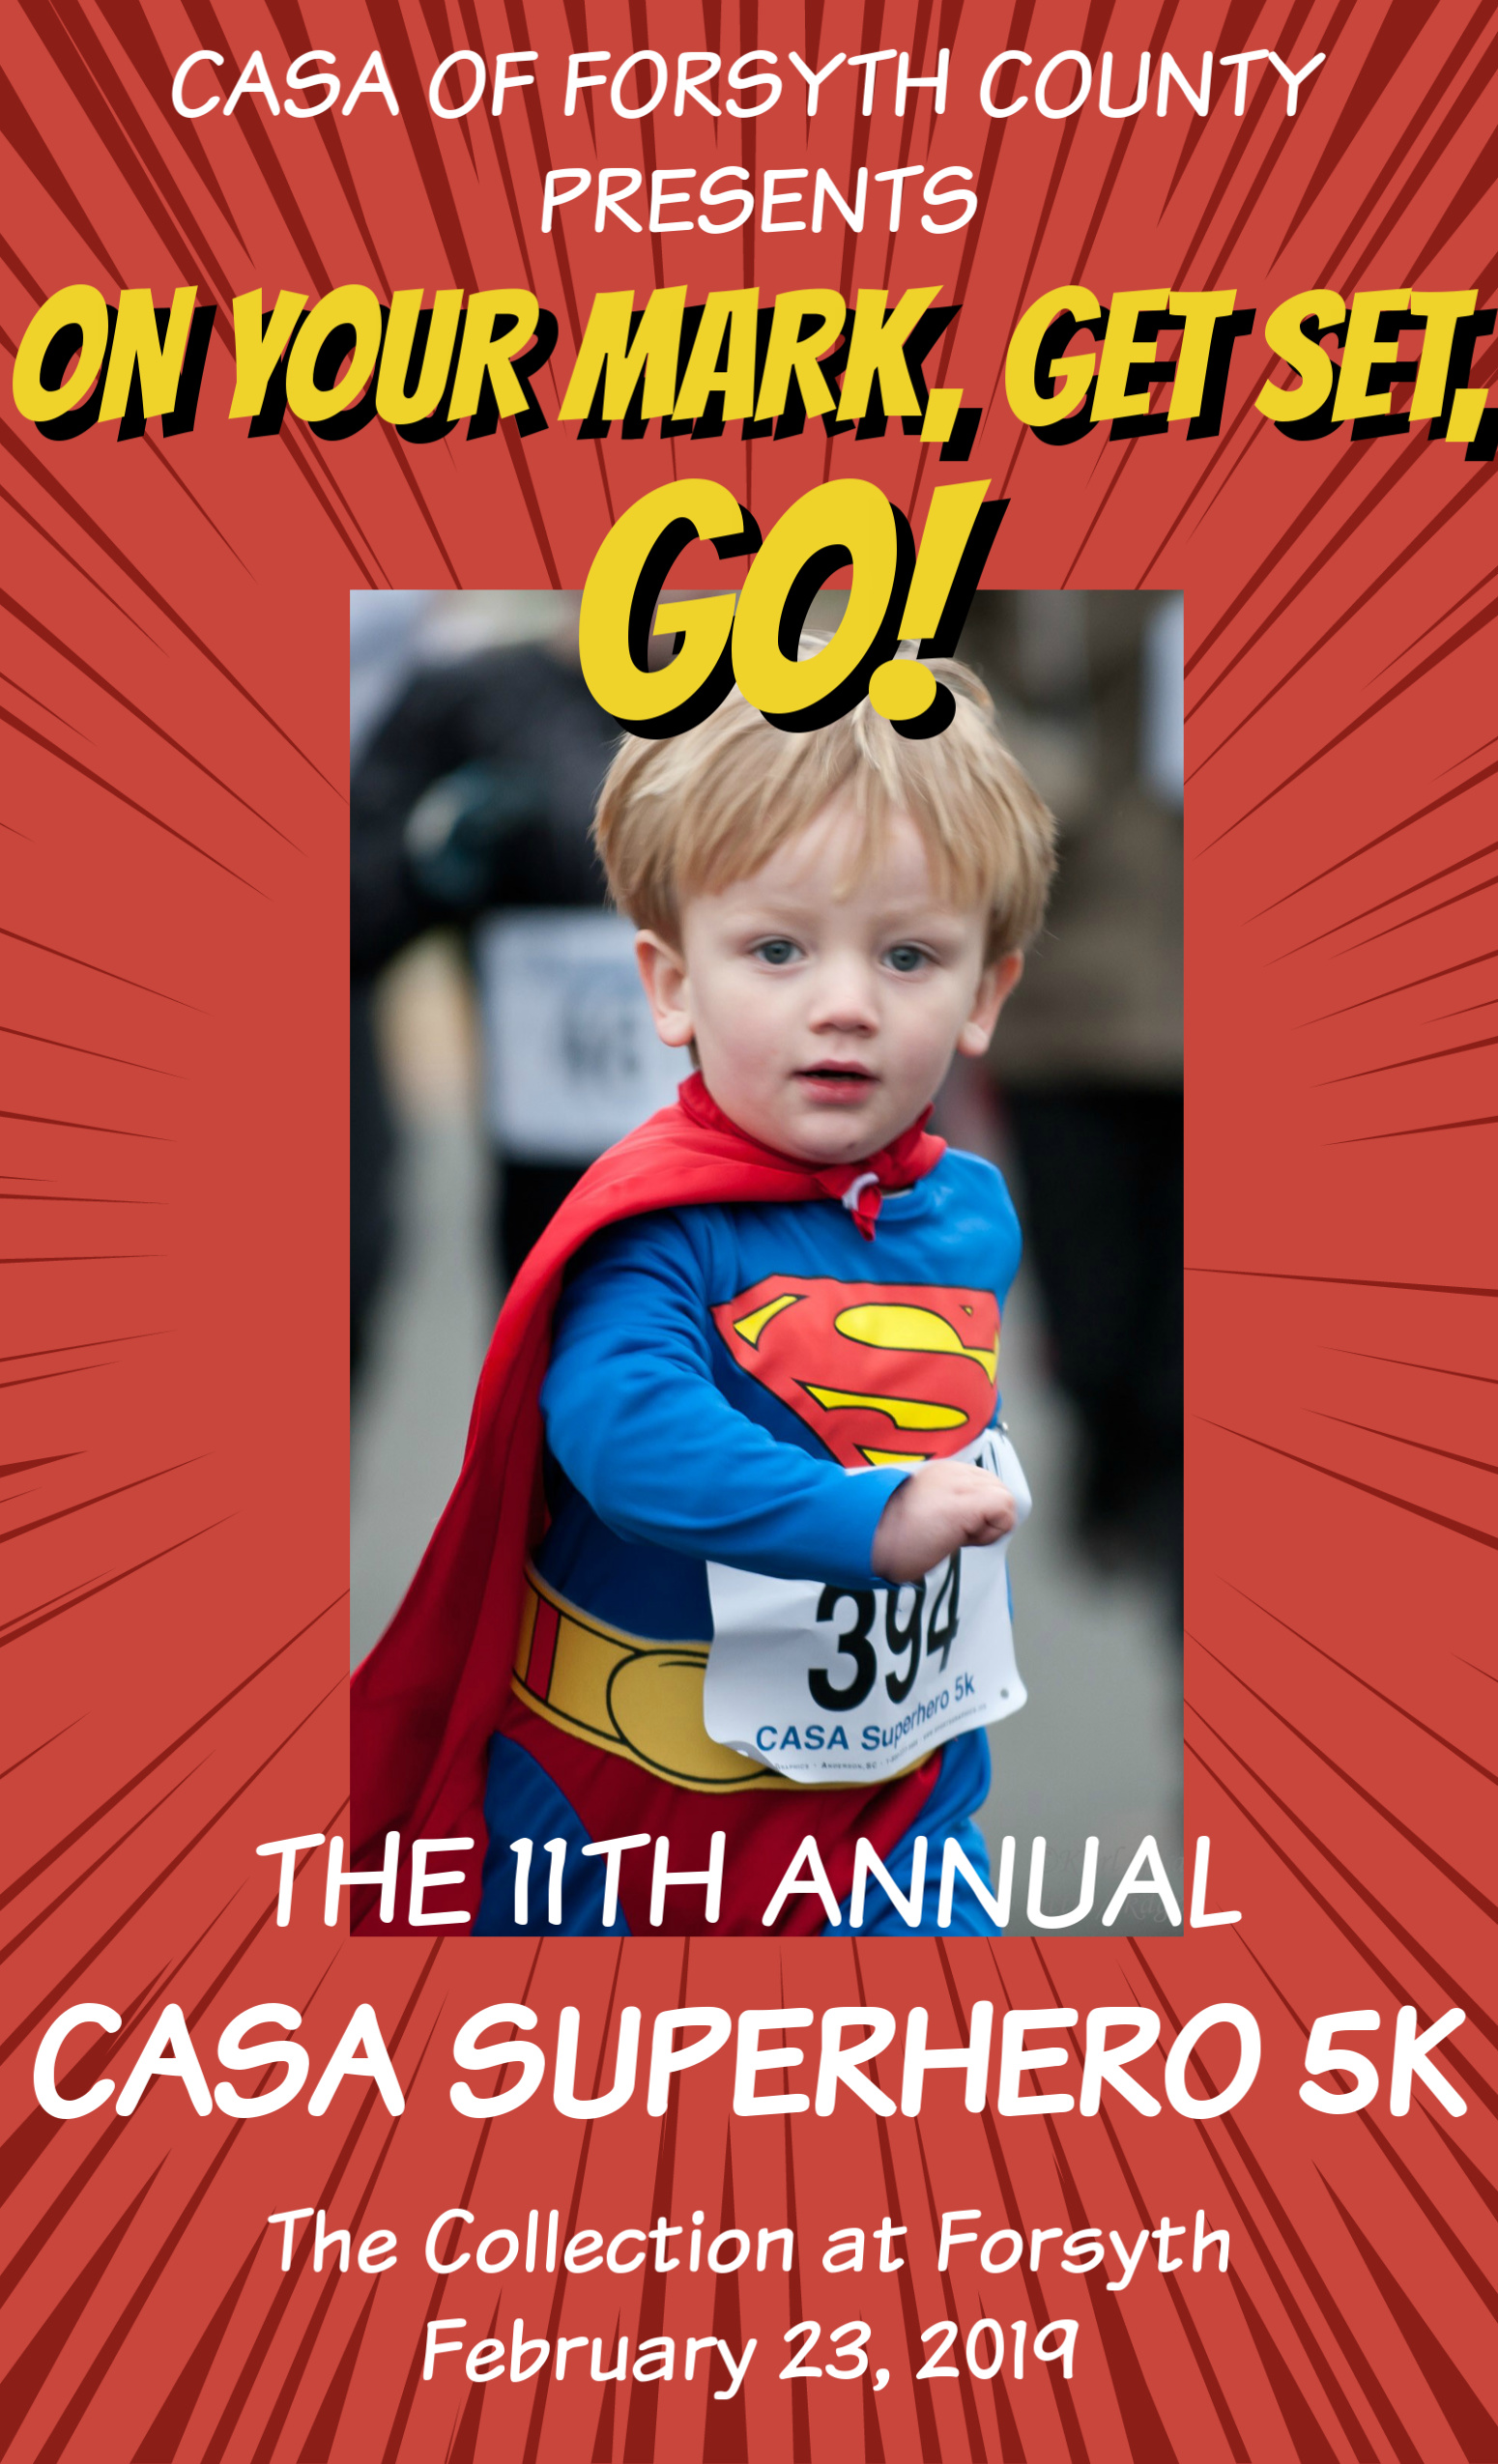 Be a SUPERHERO at our 2019 CASA Superhero 5k!